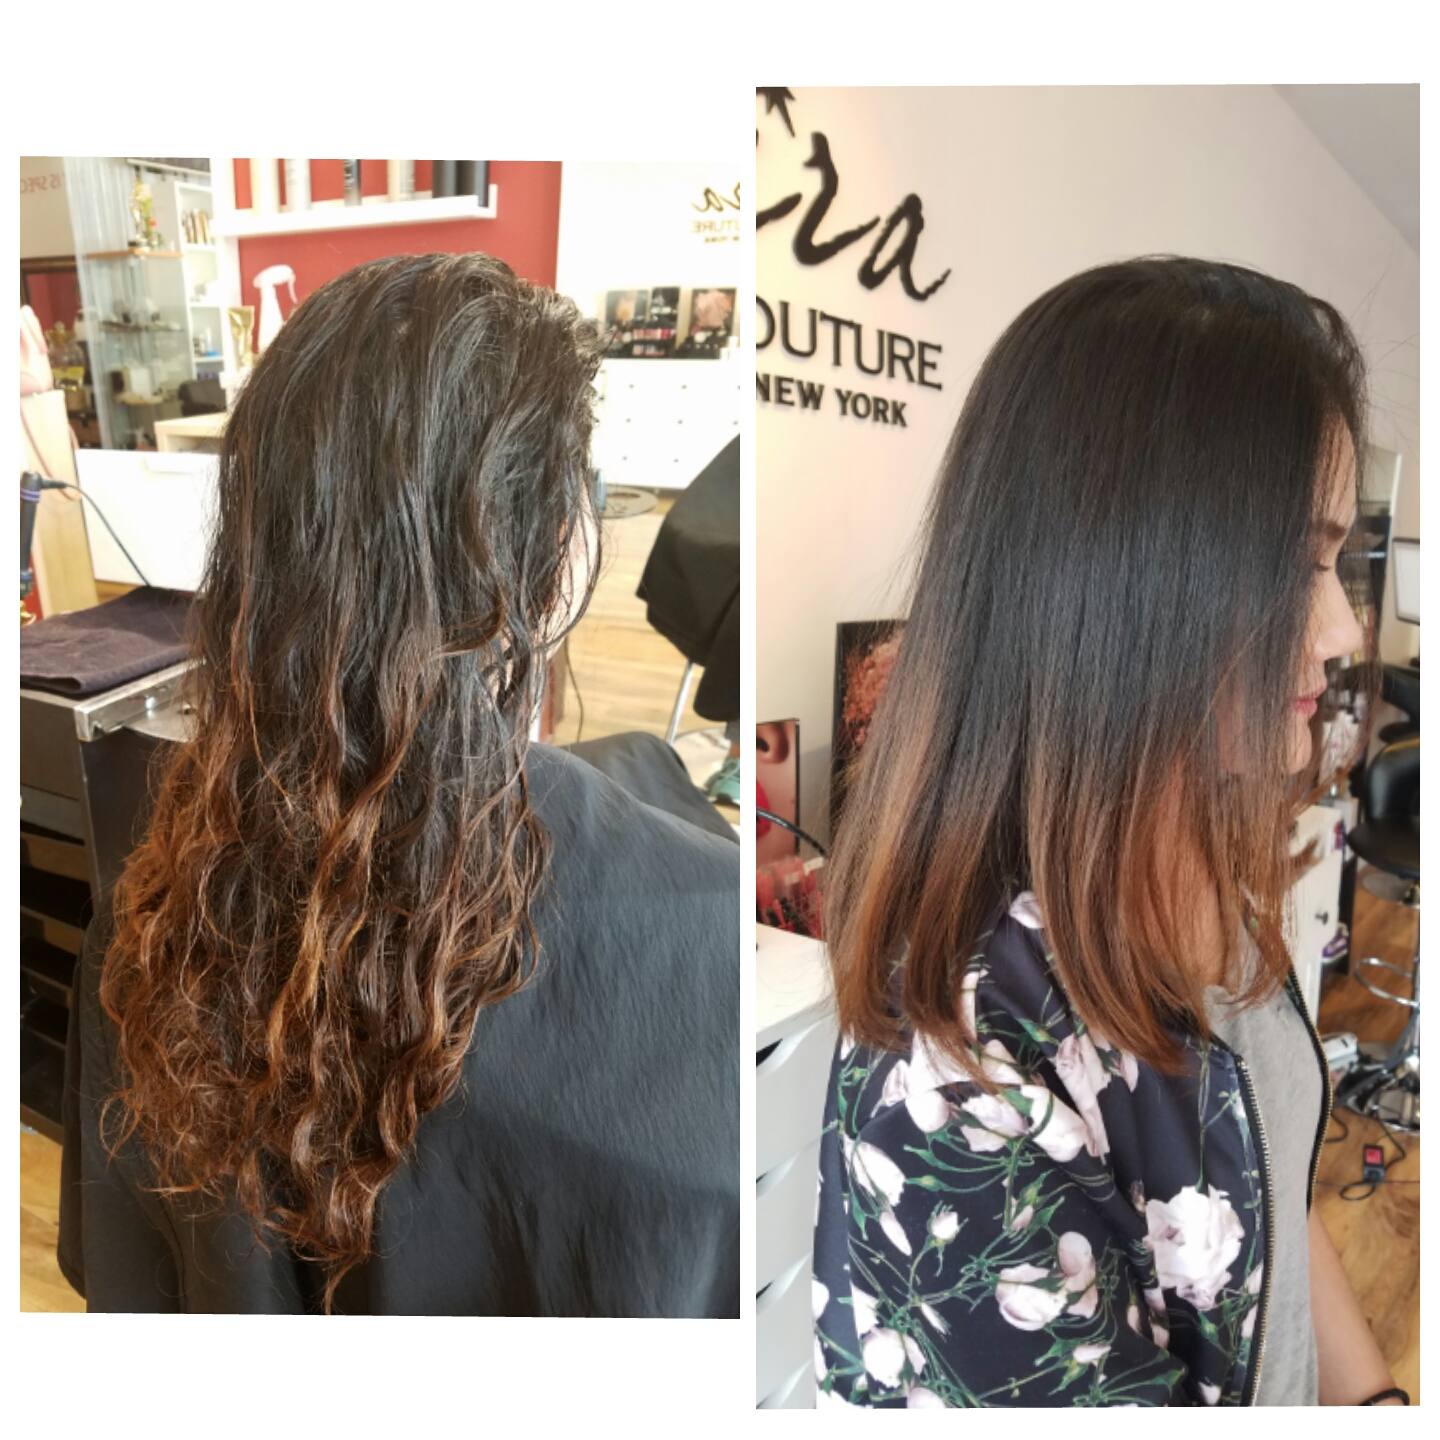 brazilian-blowout-before-and-after-photo_30267394281_o.jpg